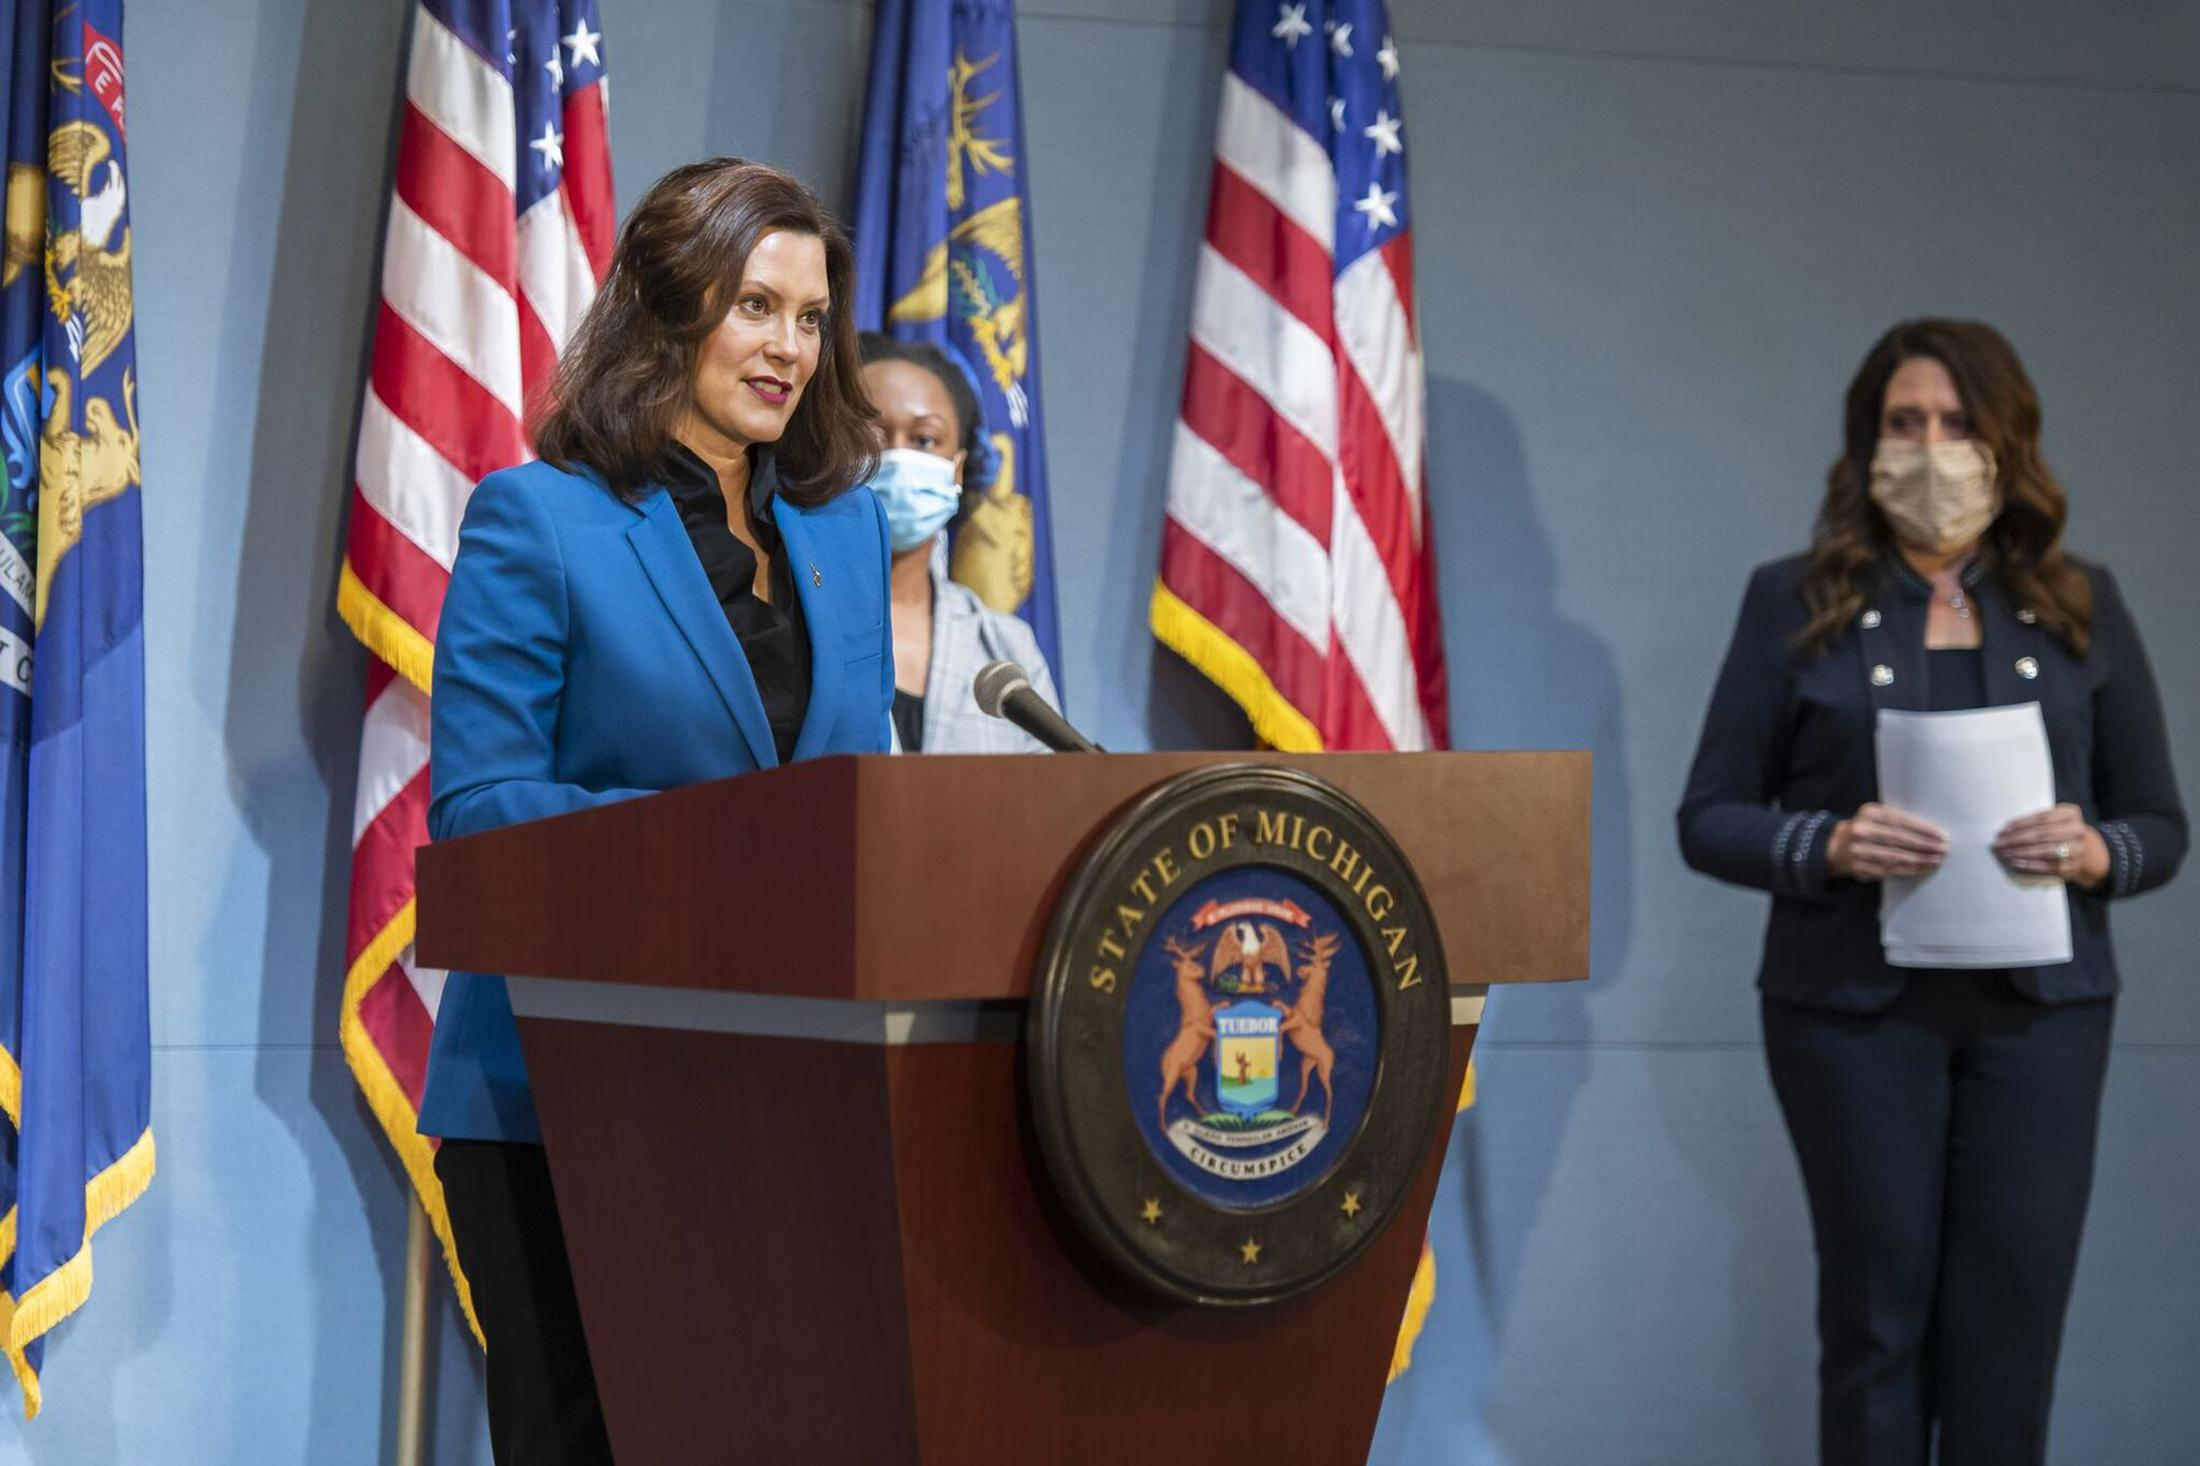 Gretchen Whitmer, Michigan governor, facing lawsuit over 'drastic ...